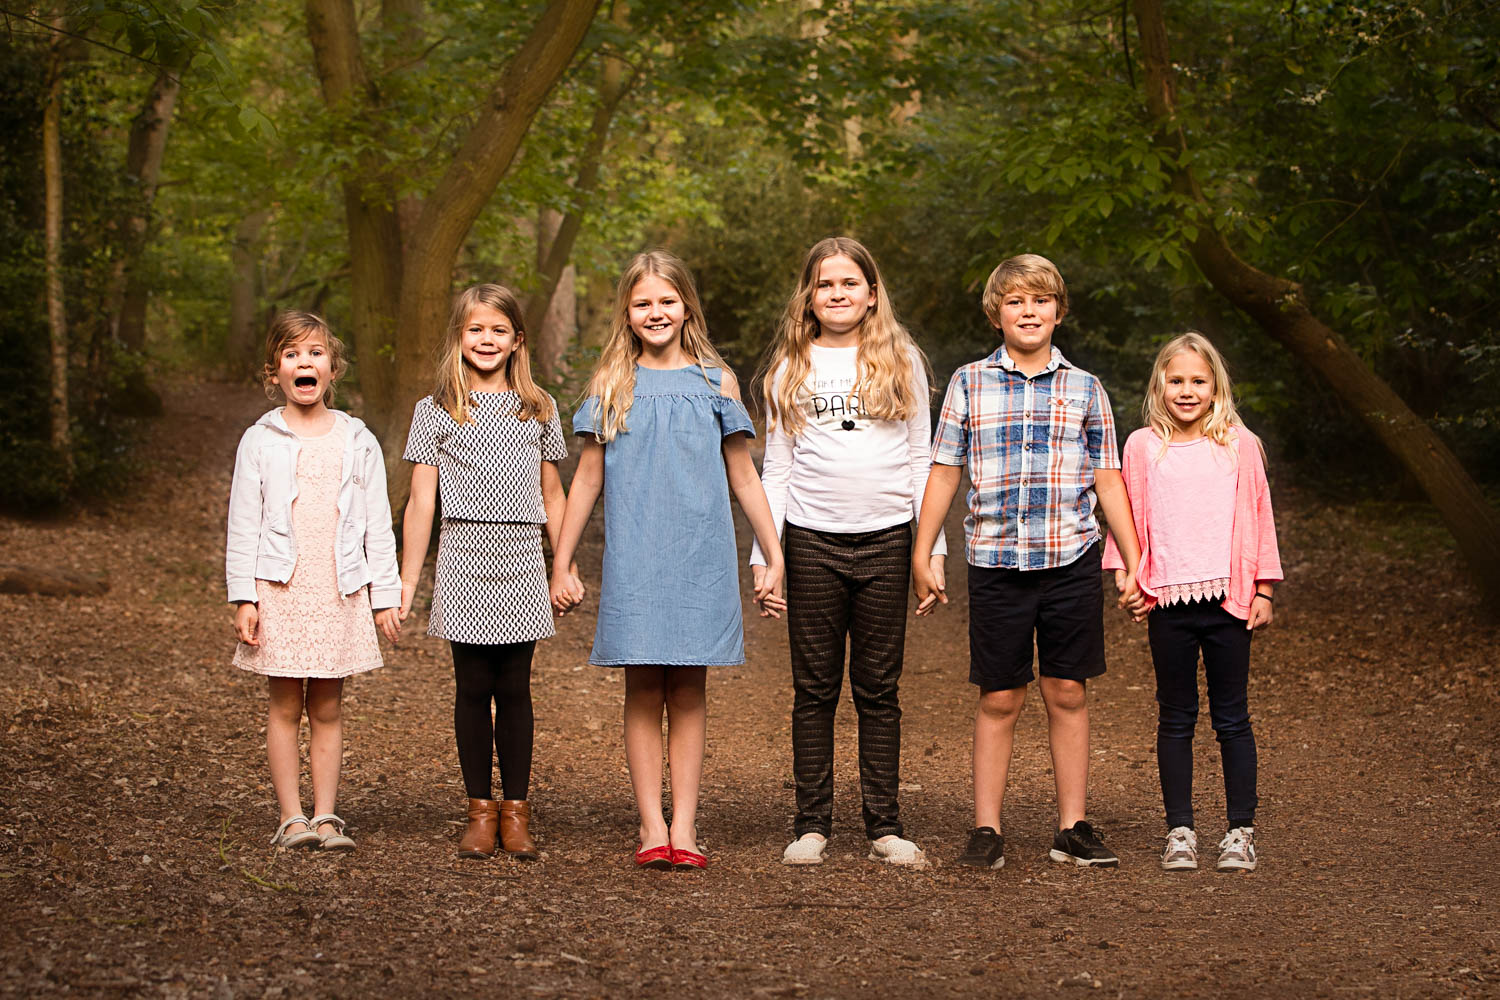 Siblings and cousins line up for family portait during Autumn photoshoot at Ampthill Park, Bedford.